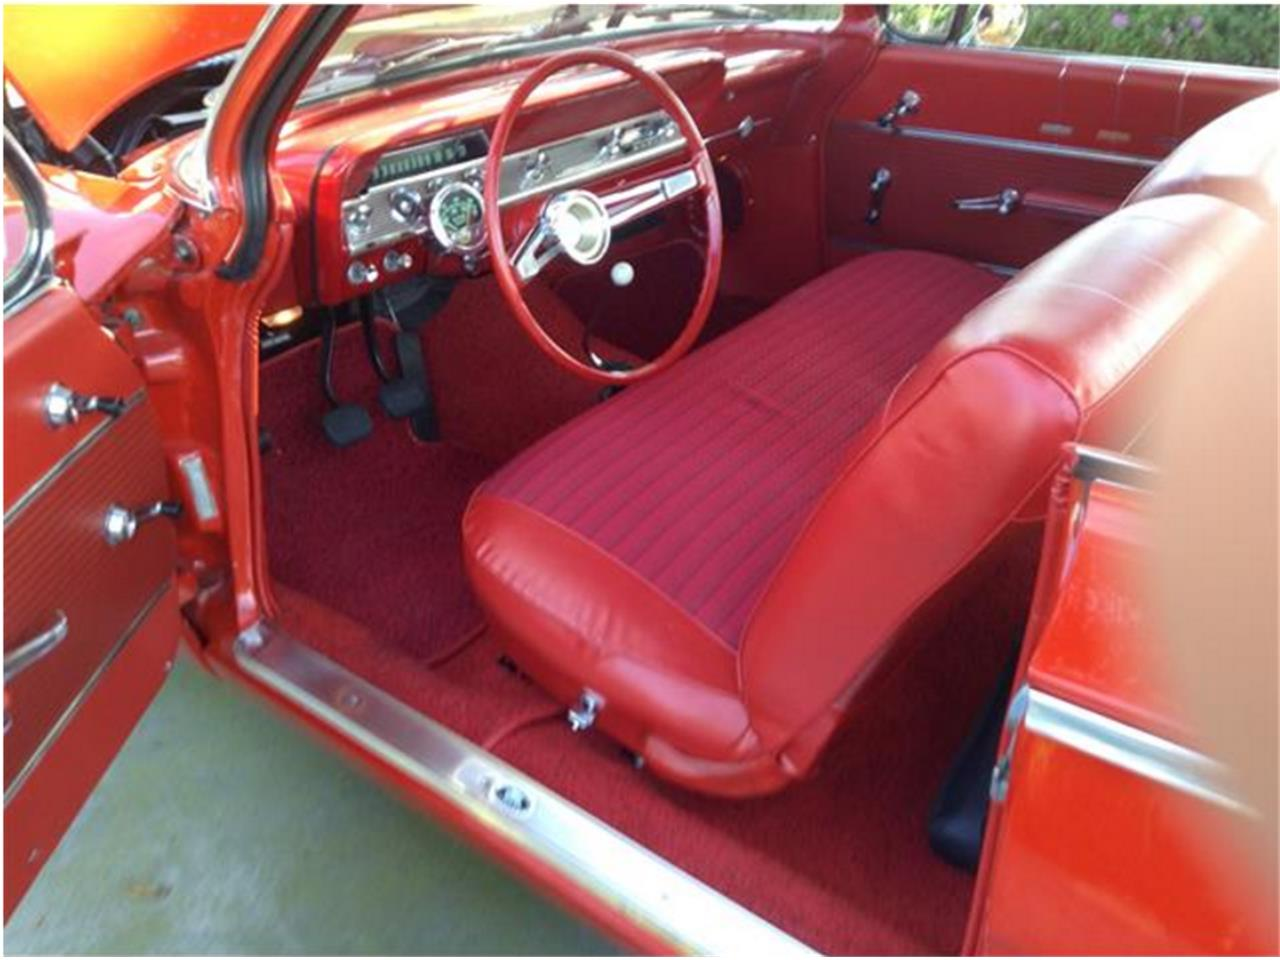 Large Picture of Classic 1962 Chevrolet Bel Air located in California - $59,993.00 Offered by a Private Seller - FWFG